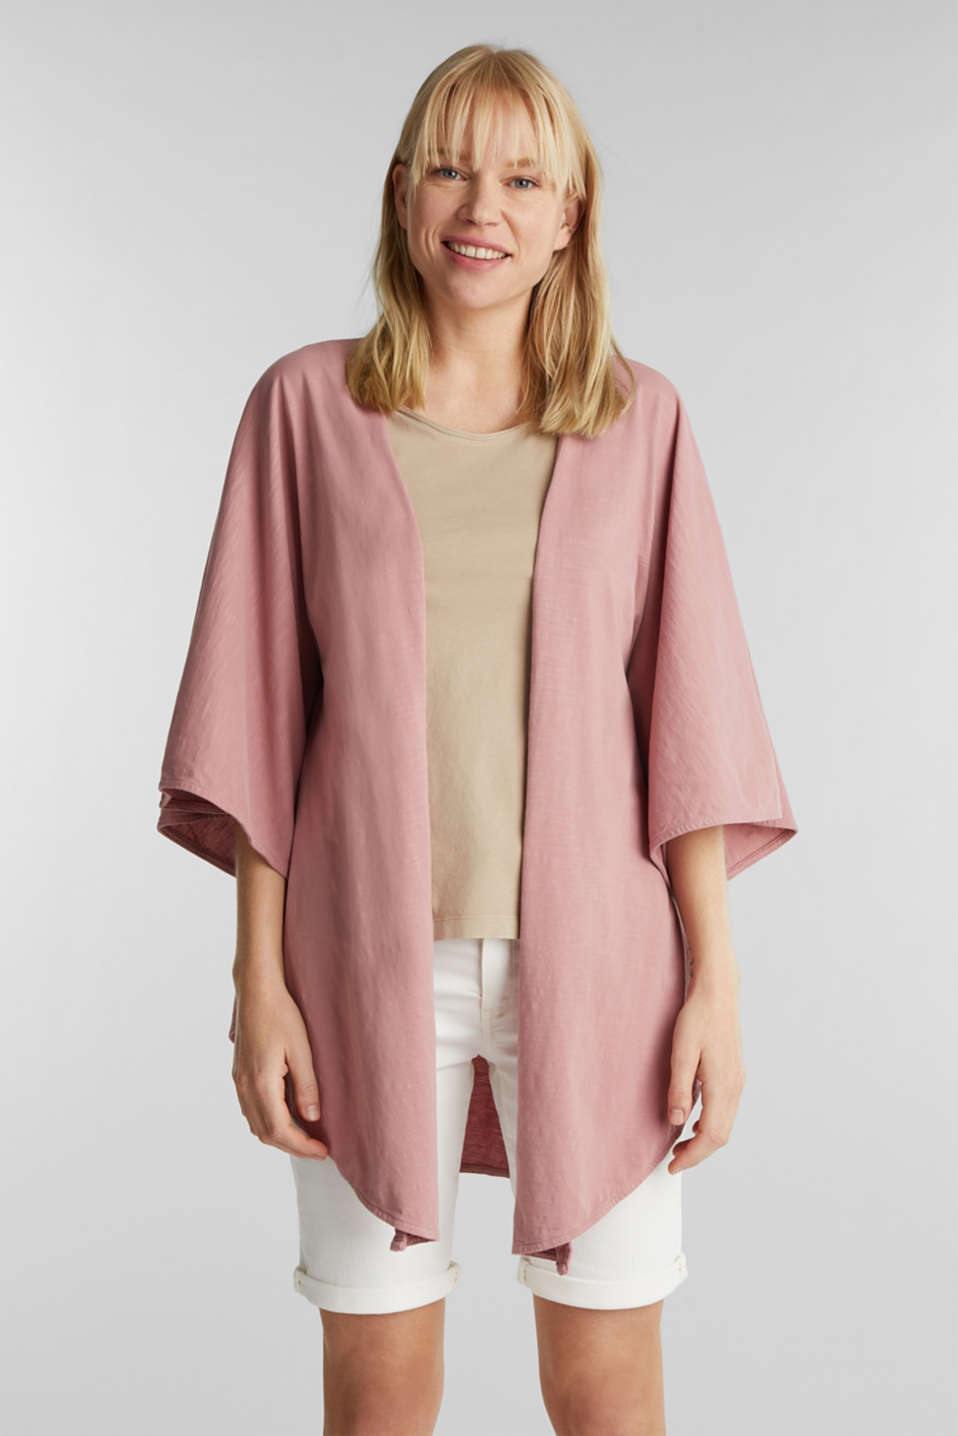 Esprit - EarthColors®: poncho made of organic cotton